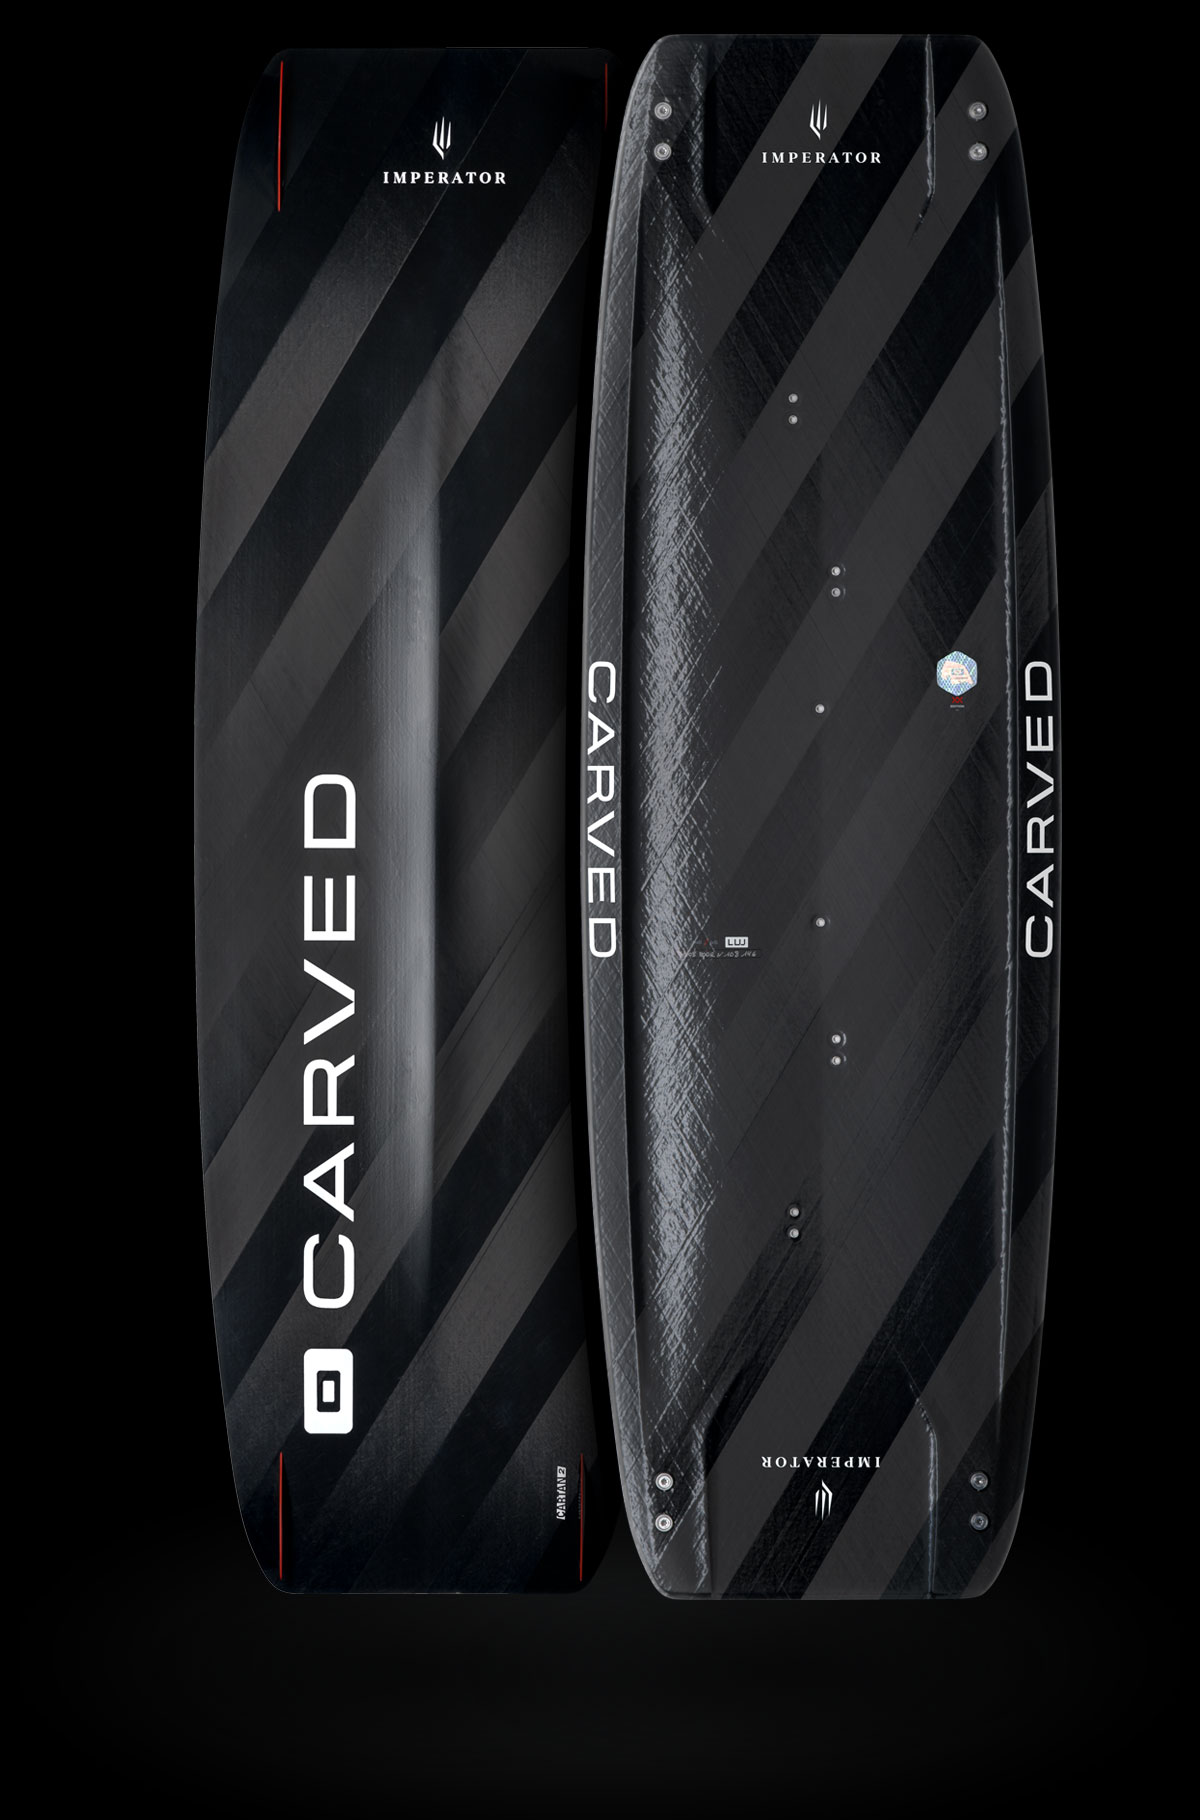 Carved Imperator 7 LW 146x45 Carbon Kite Board